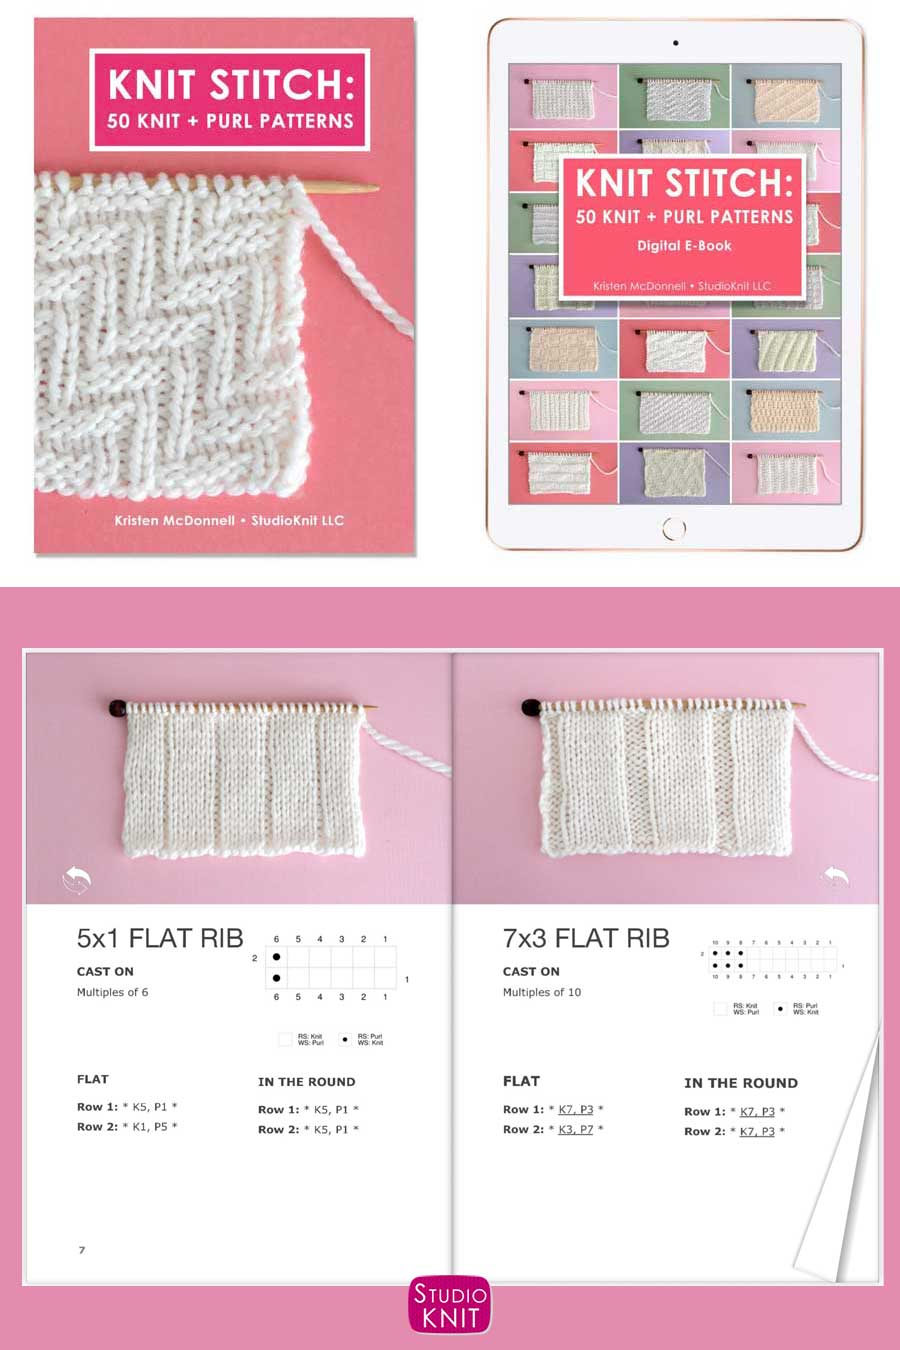 Knit Stitch Pattern Book with 5x1 Flat Rib and 7x3 Flat Rib Stitch Patterns